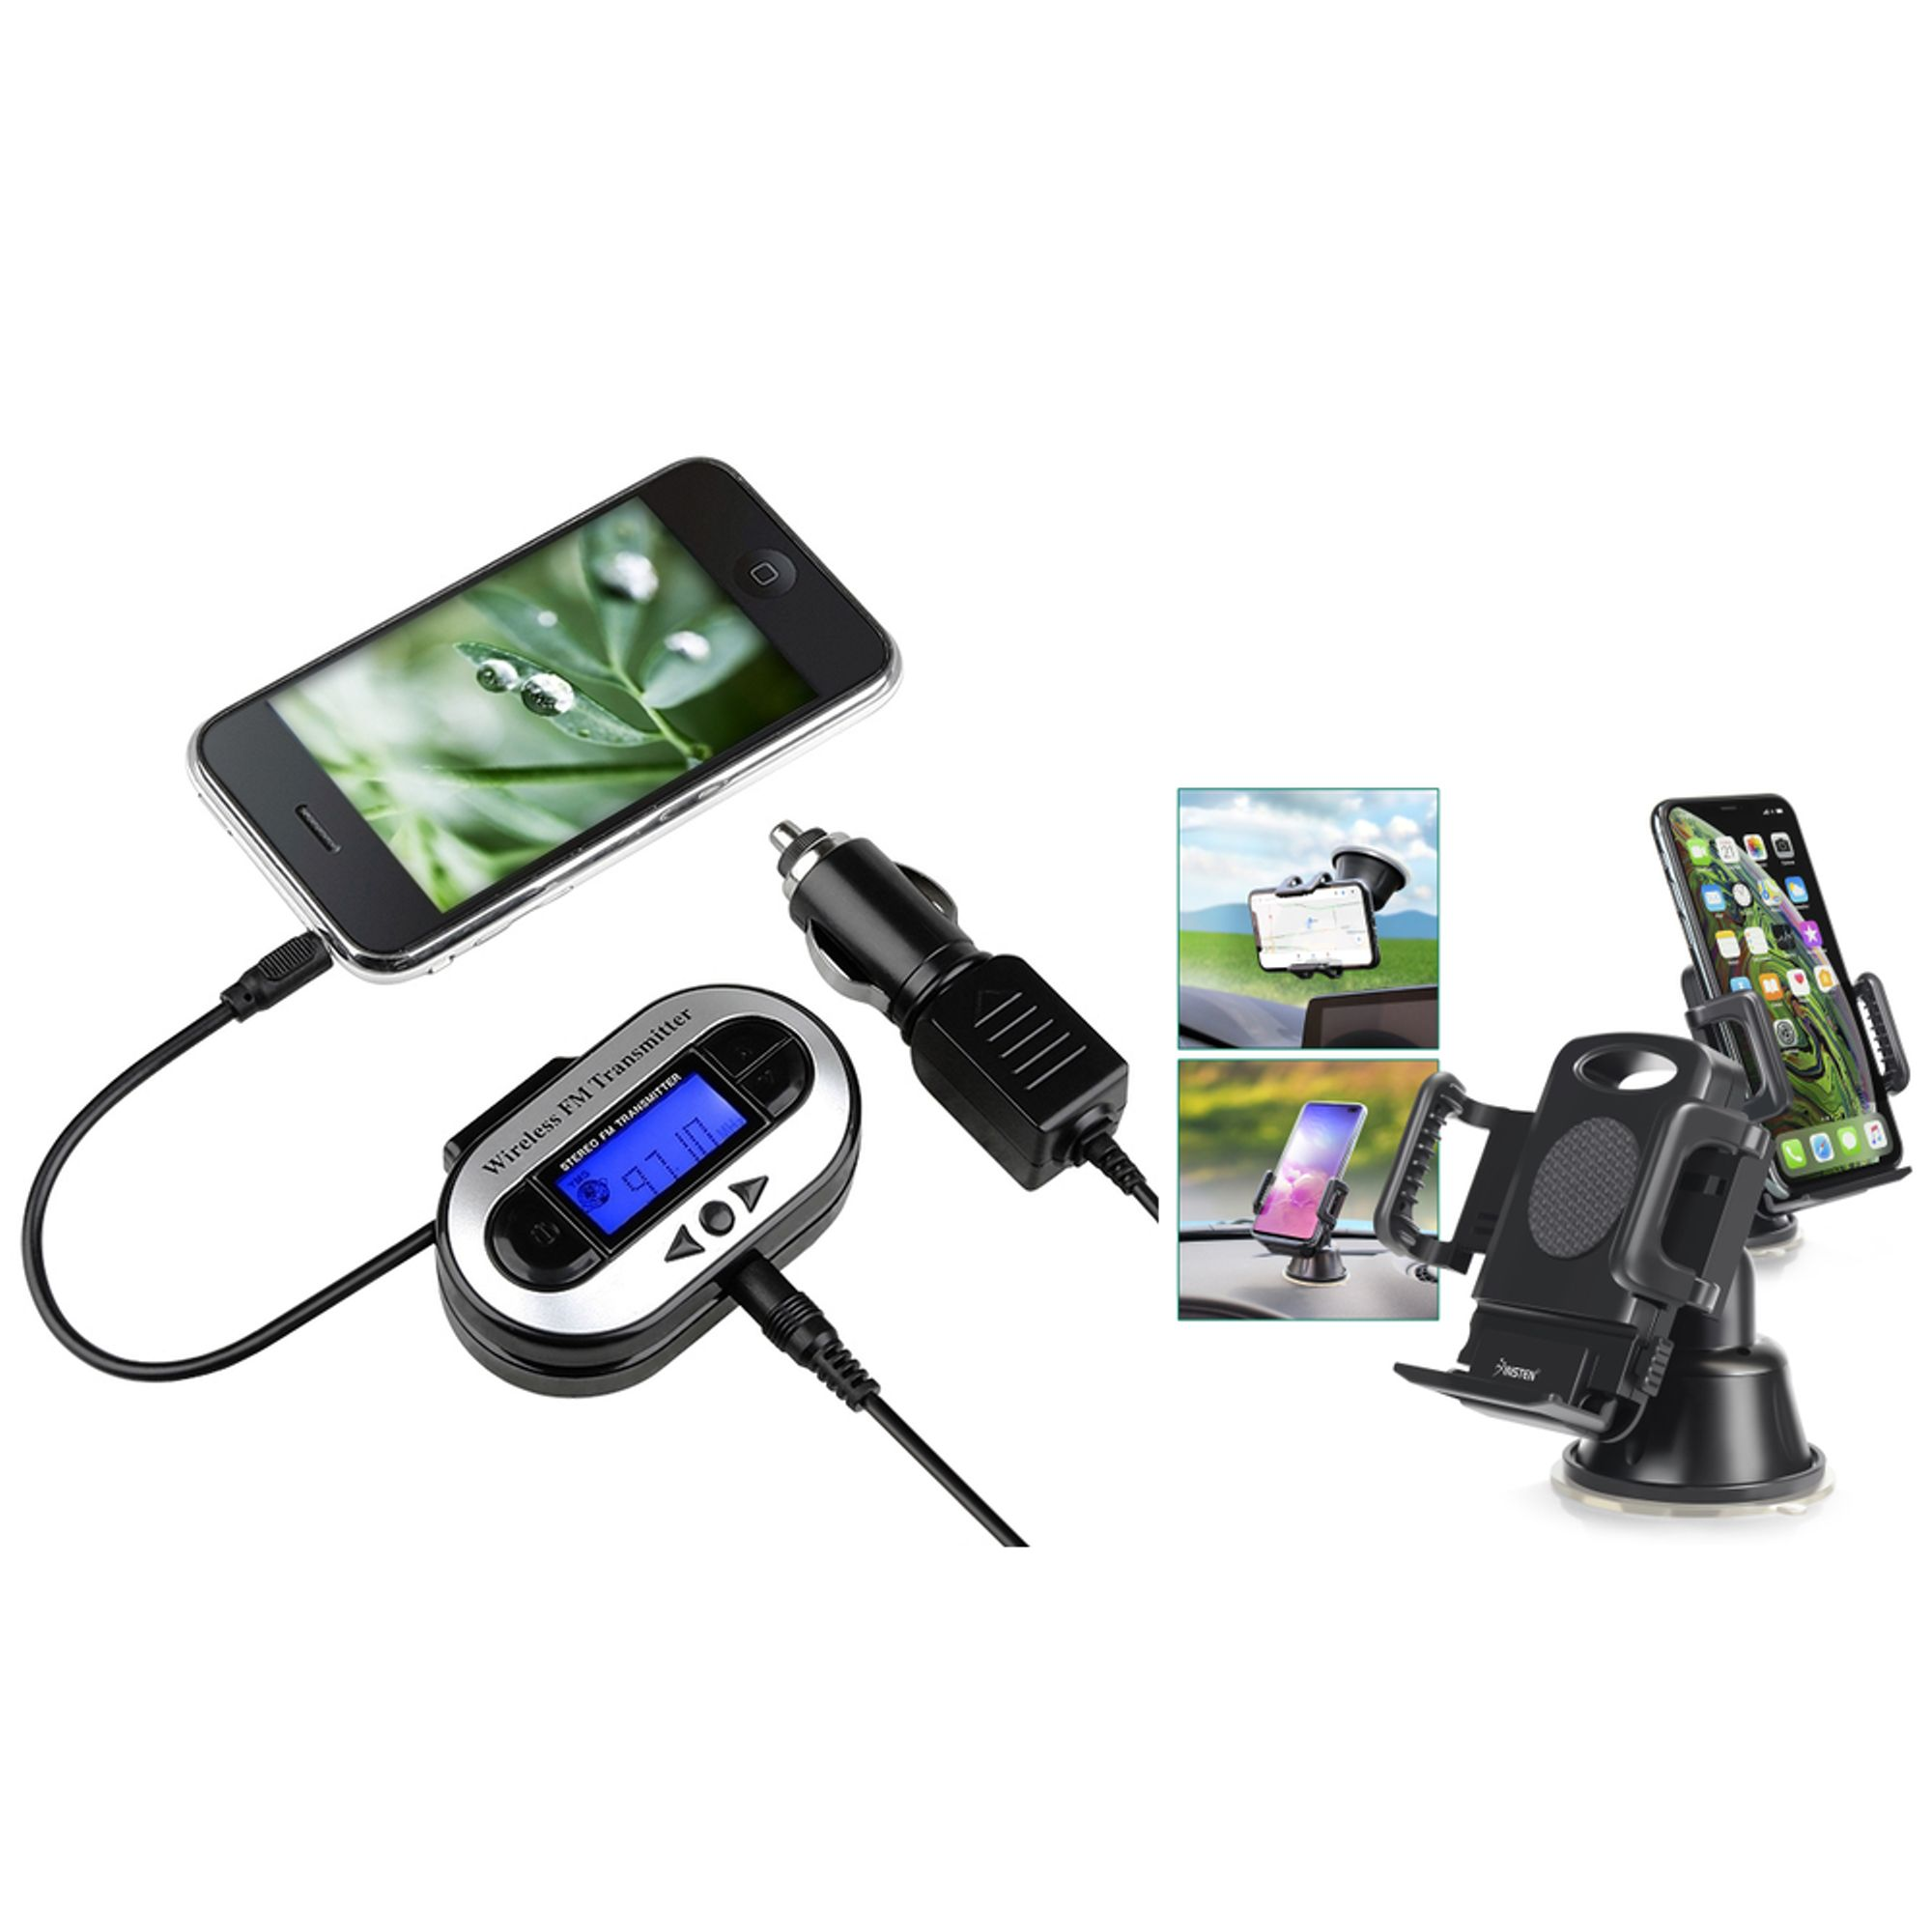 Insten For Galaxy S5 S4 S3 Note 2 3 iPhone 6 5 5S 5C 4 4S LED FM Transmitter Car Adapter (w/ Universal Car Phone Holder)